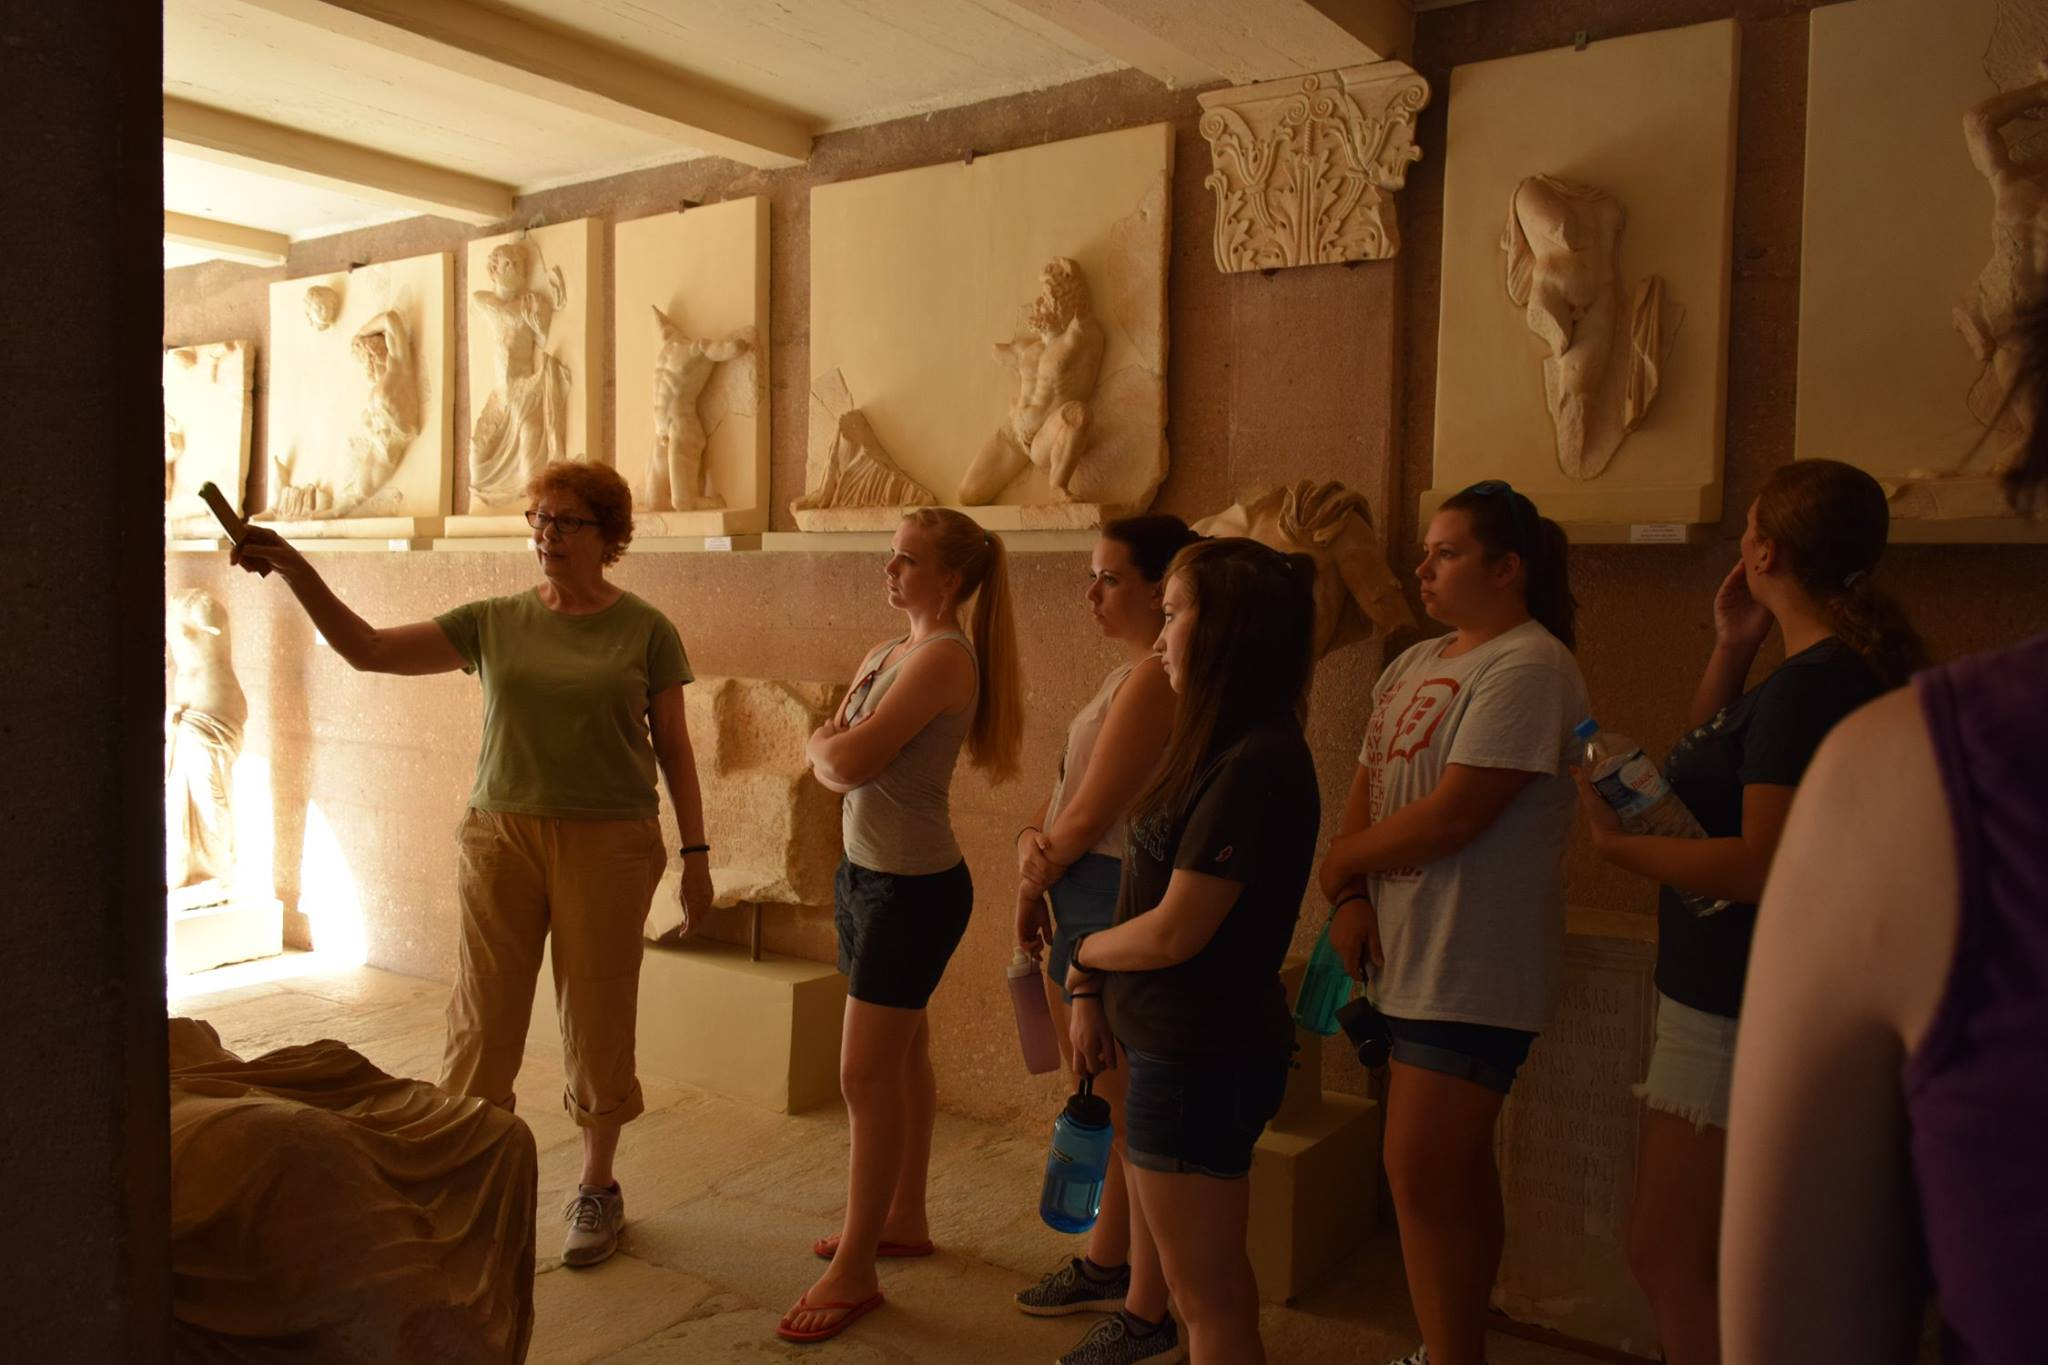 Classical scholar Mary Sturgeon gives a tour of Corinth's sculpture to our students.